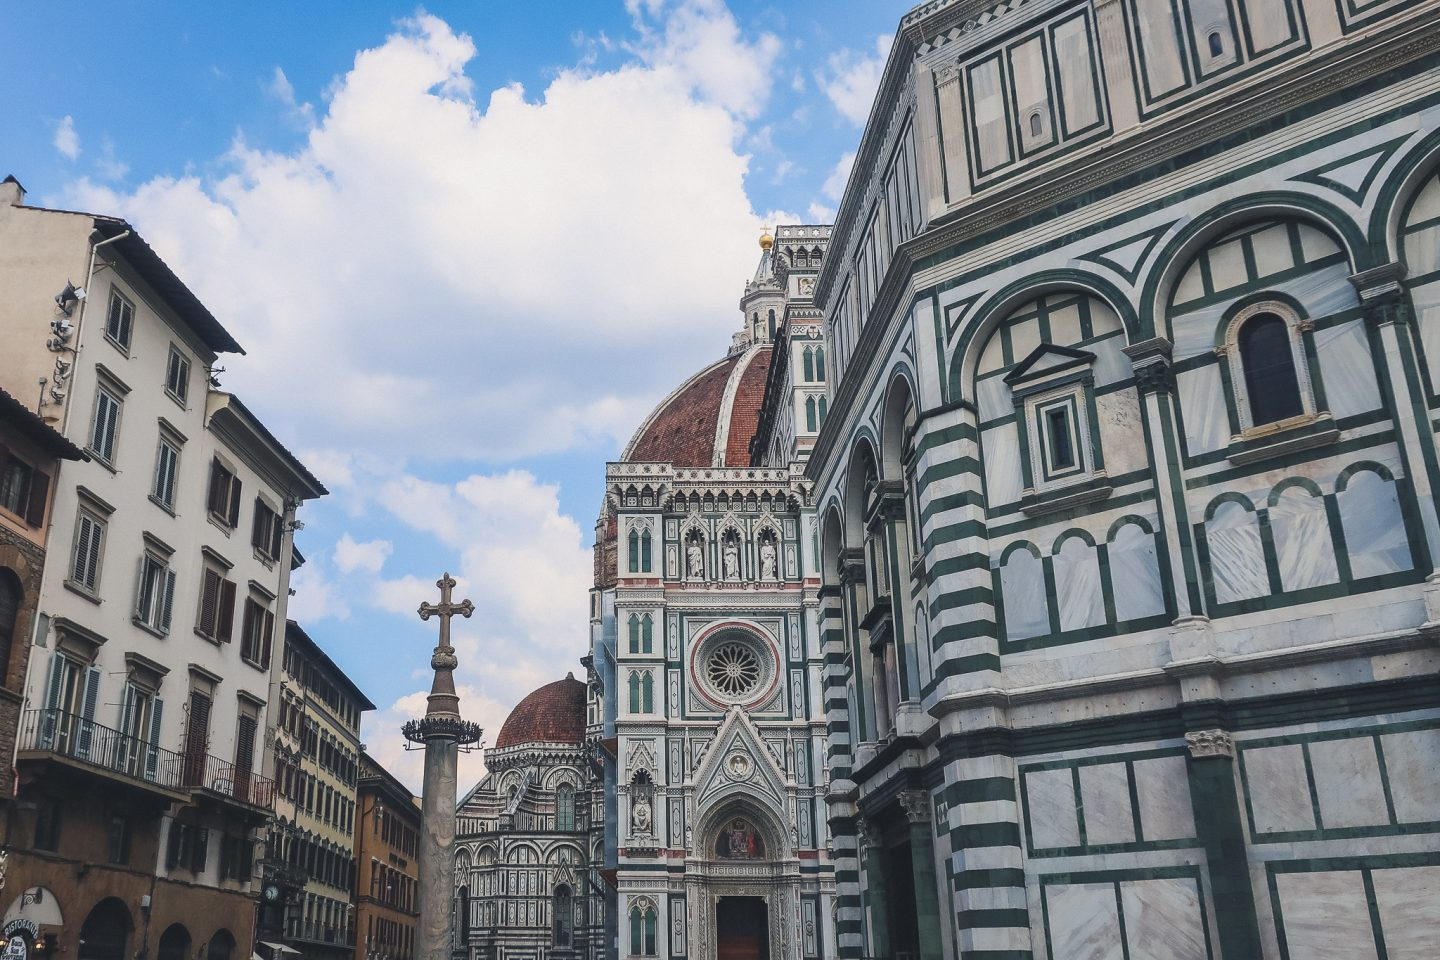 Piazza del Duomo, Florence, piazzas in Italy